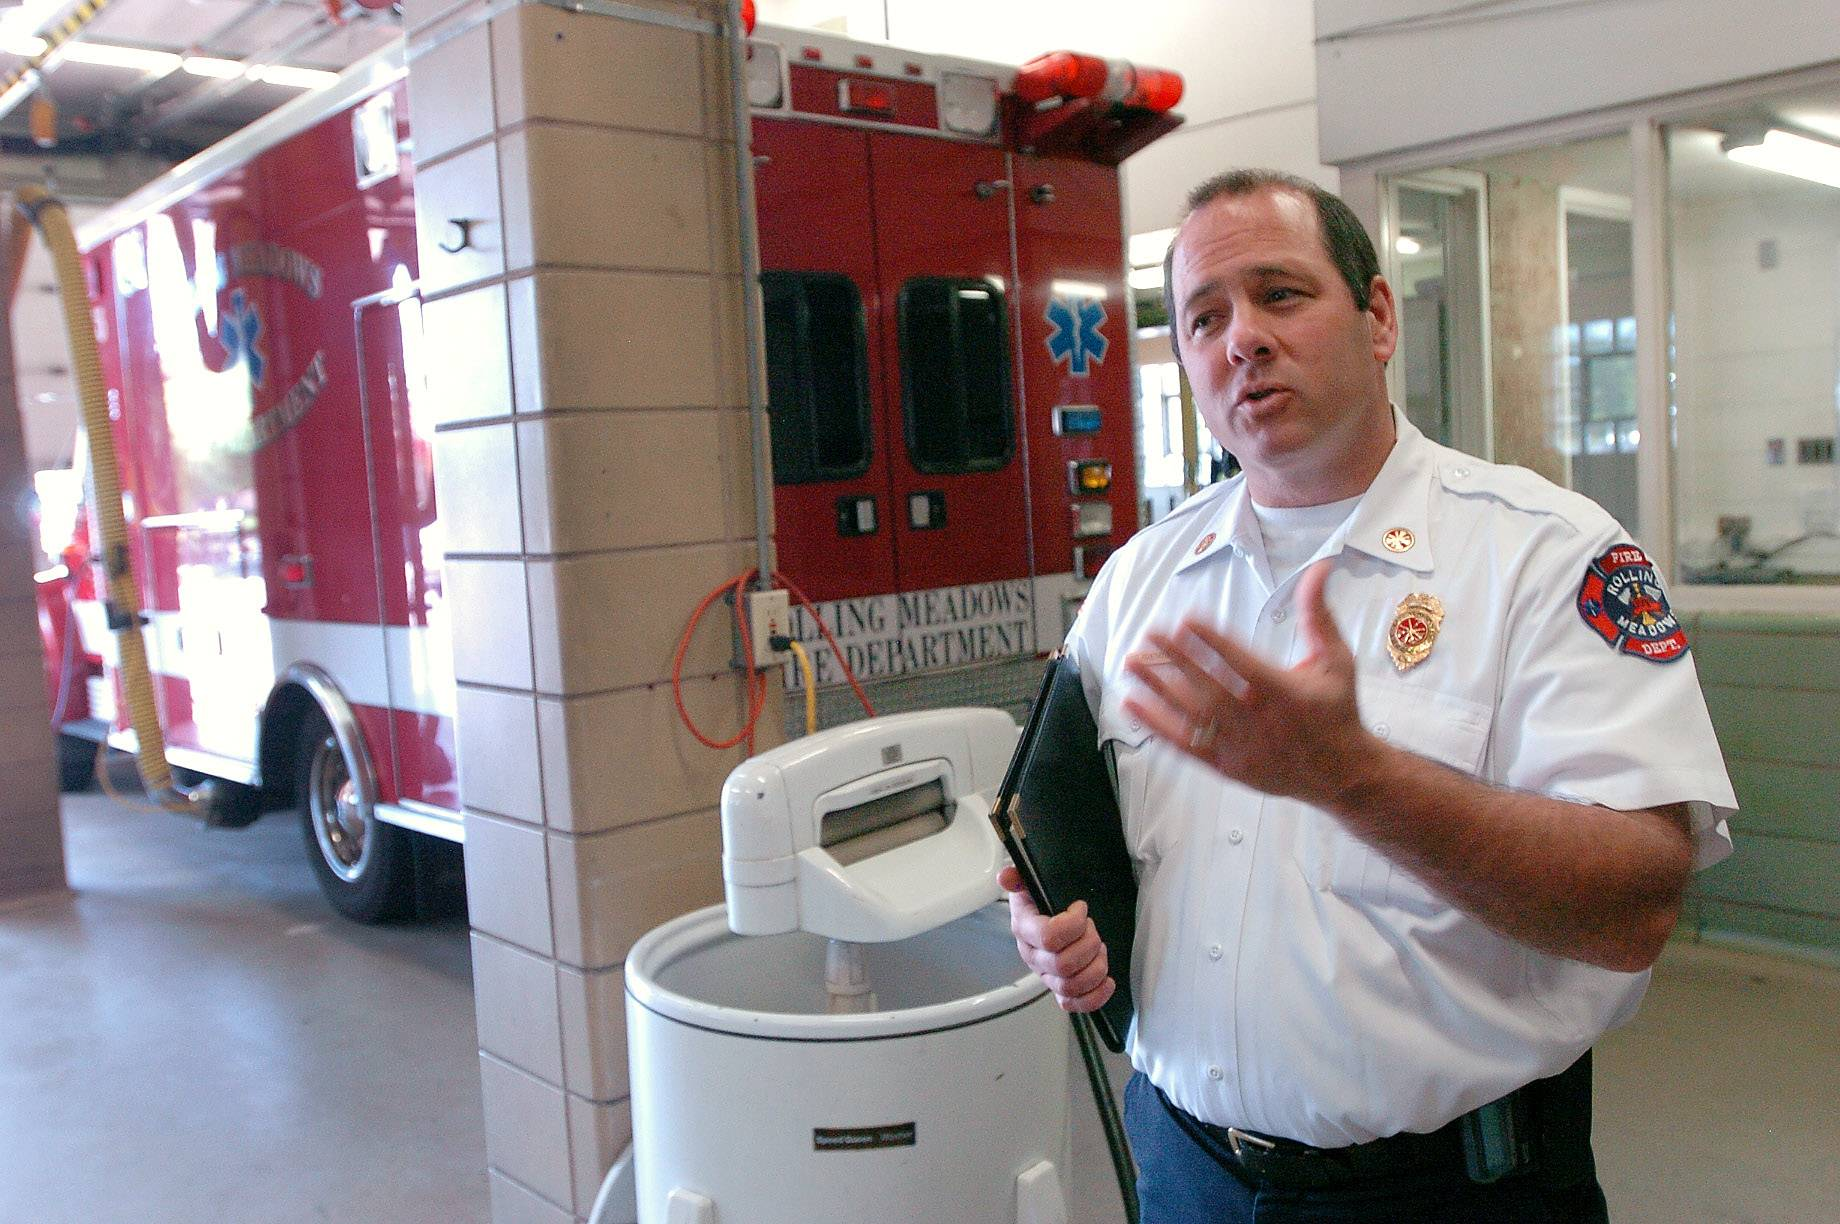 Rolling Meadows fire chief to retire after 27 years with department